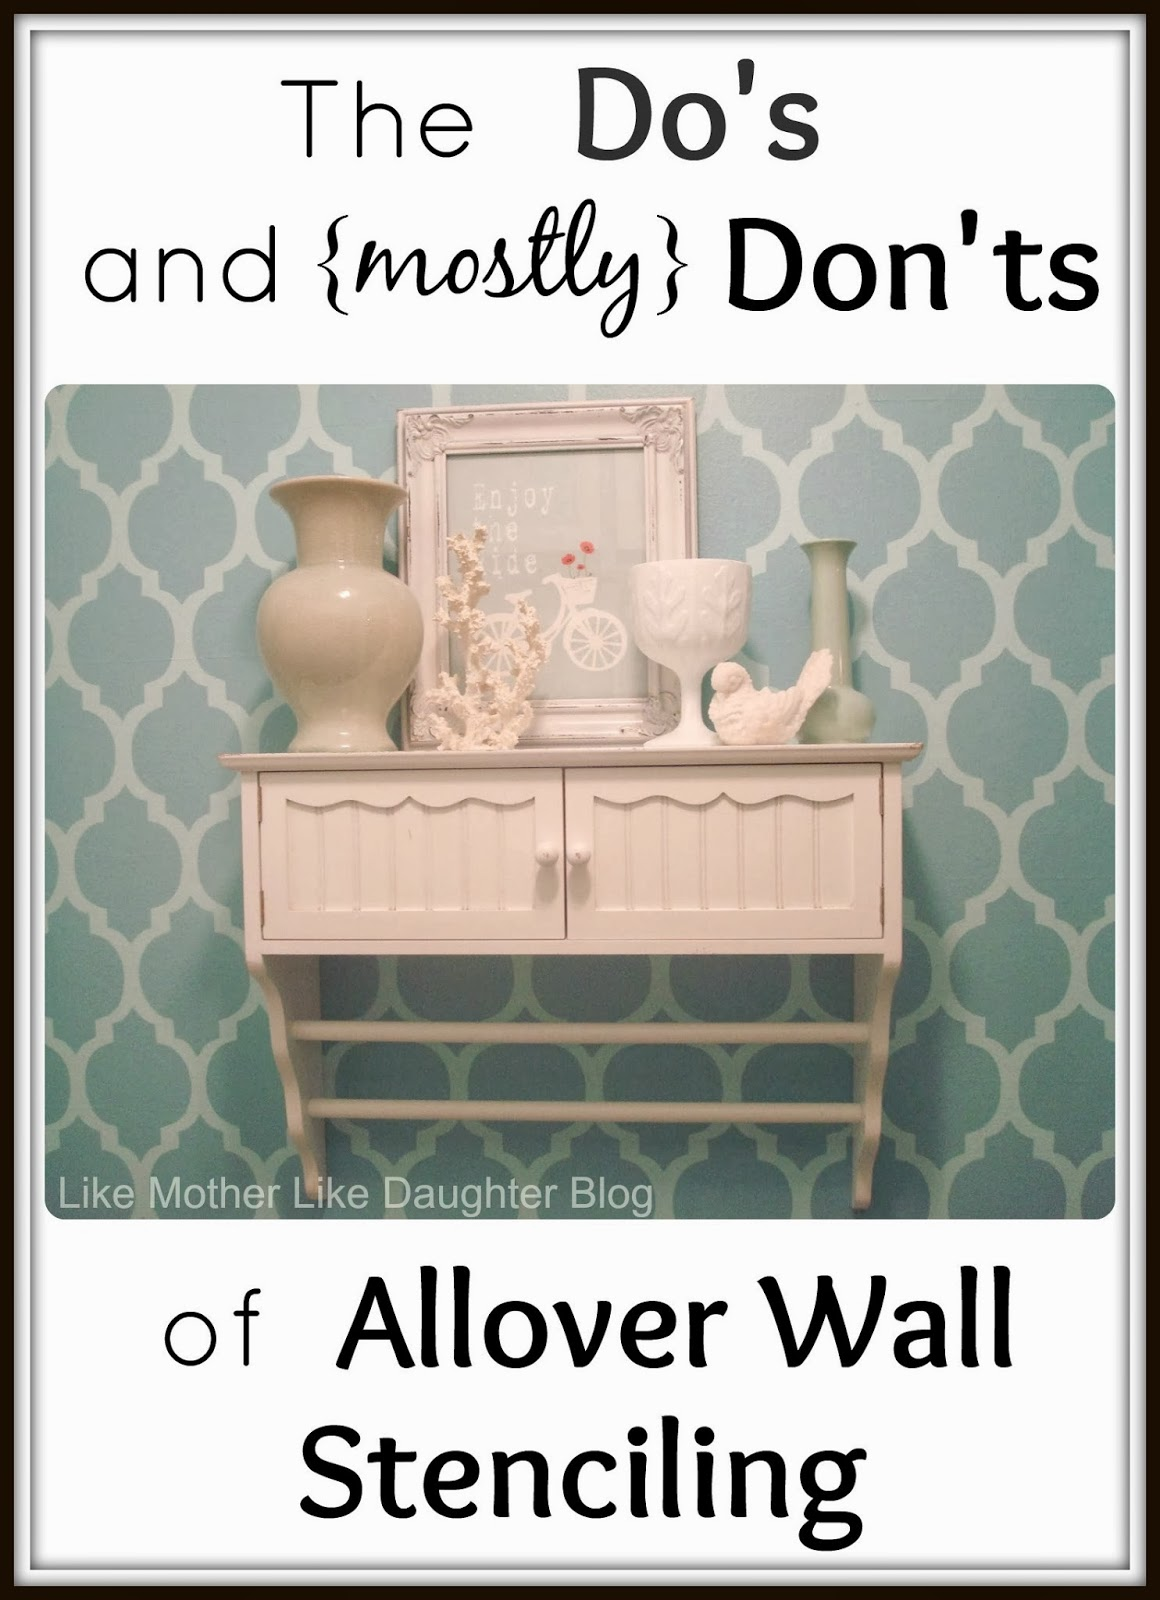 Like Mother Like Daughter Allover Wall Stenciling